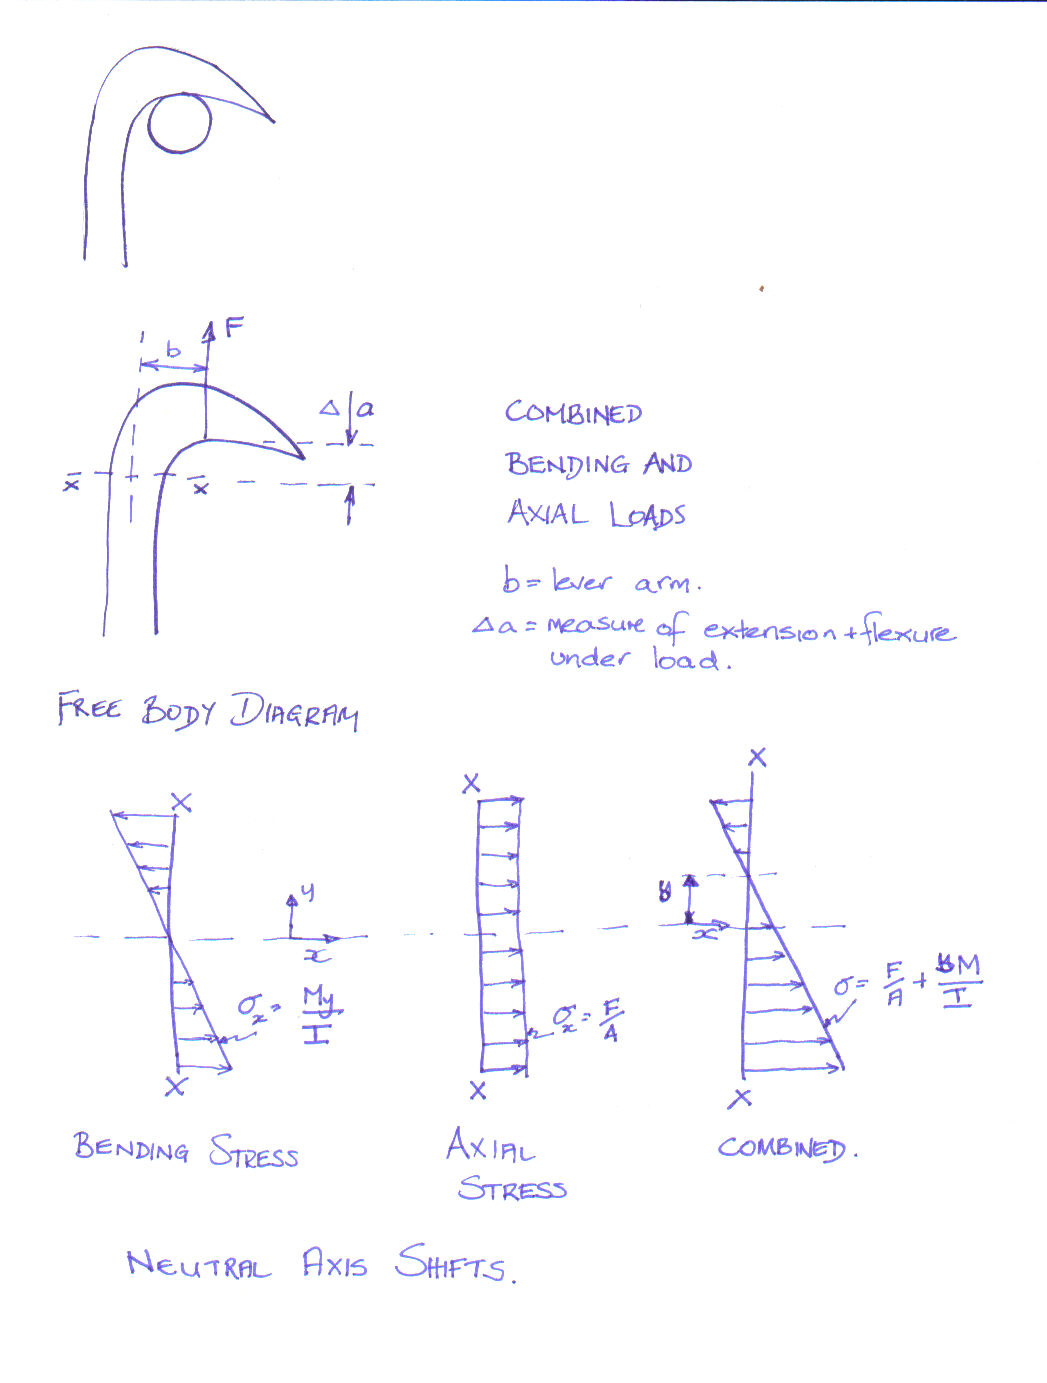 figure 7 free body diagram and stress diagrams for the bending stress and axial stress characteristic of a hook under tensile load from fenner 5 paper 1 the biomimetic bionic study of arctium minus (burdock